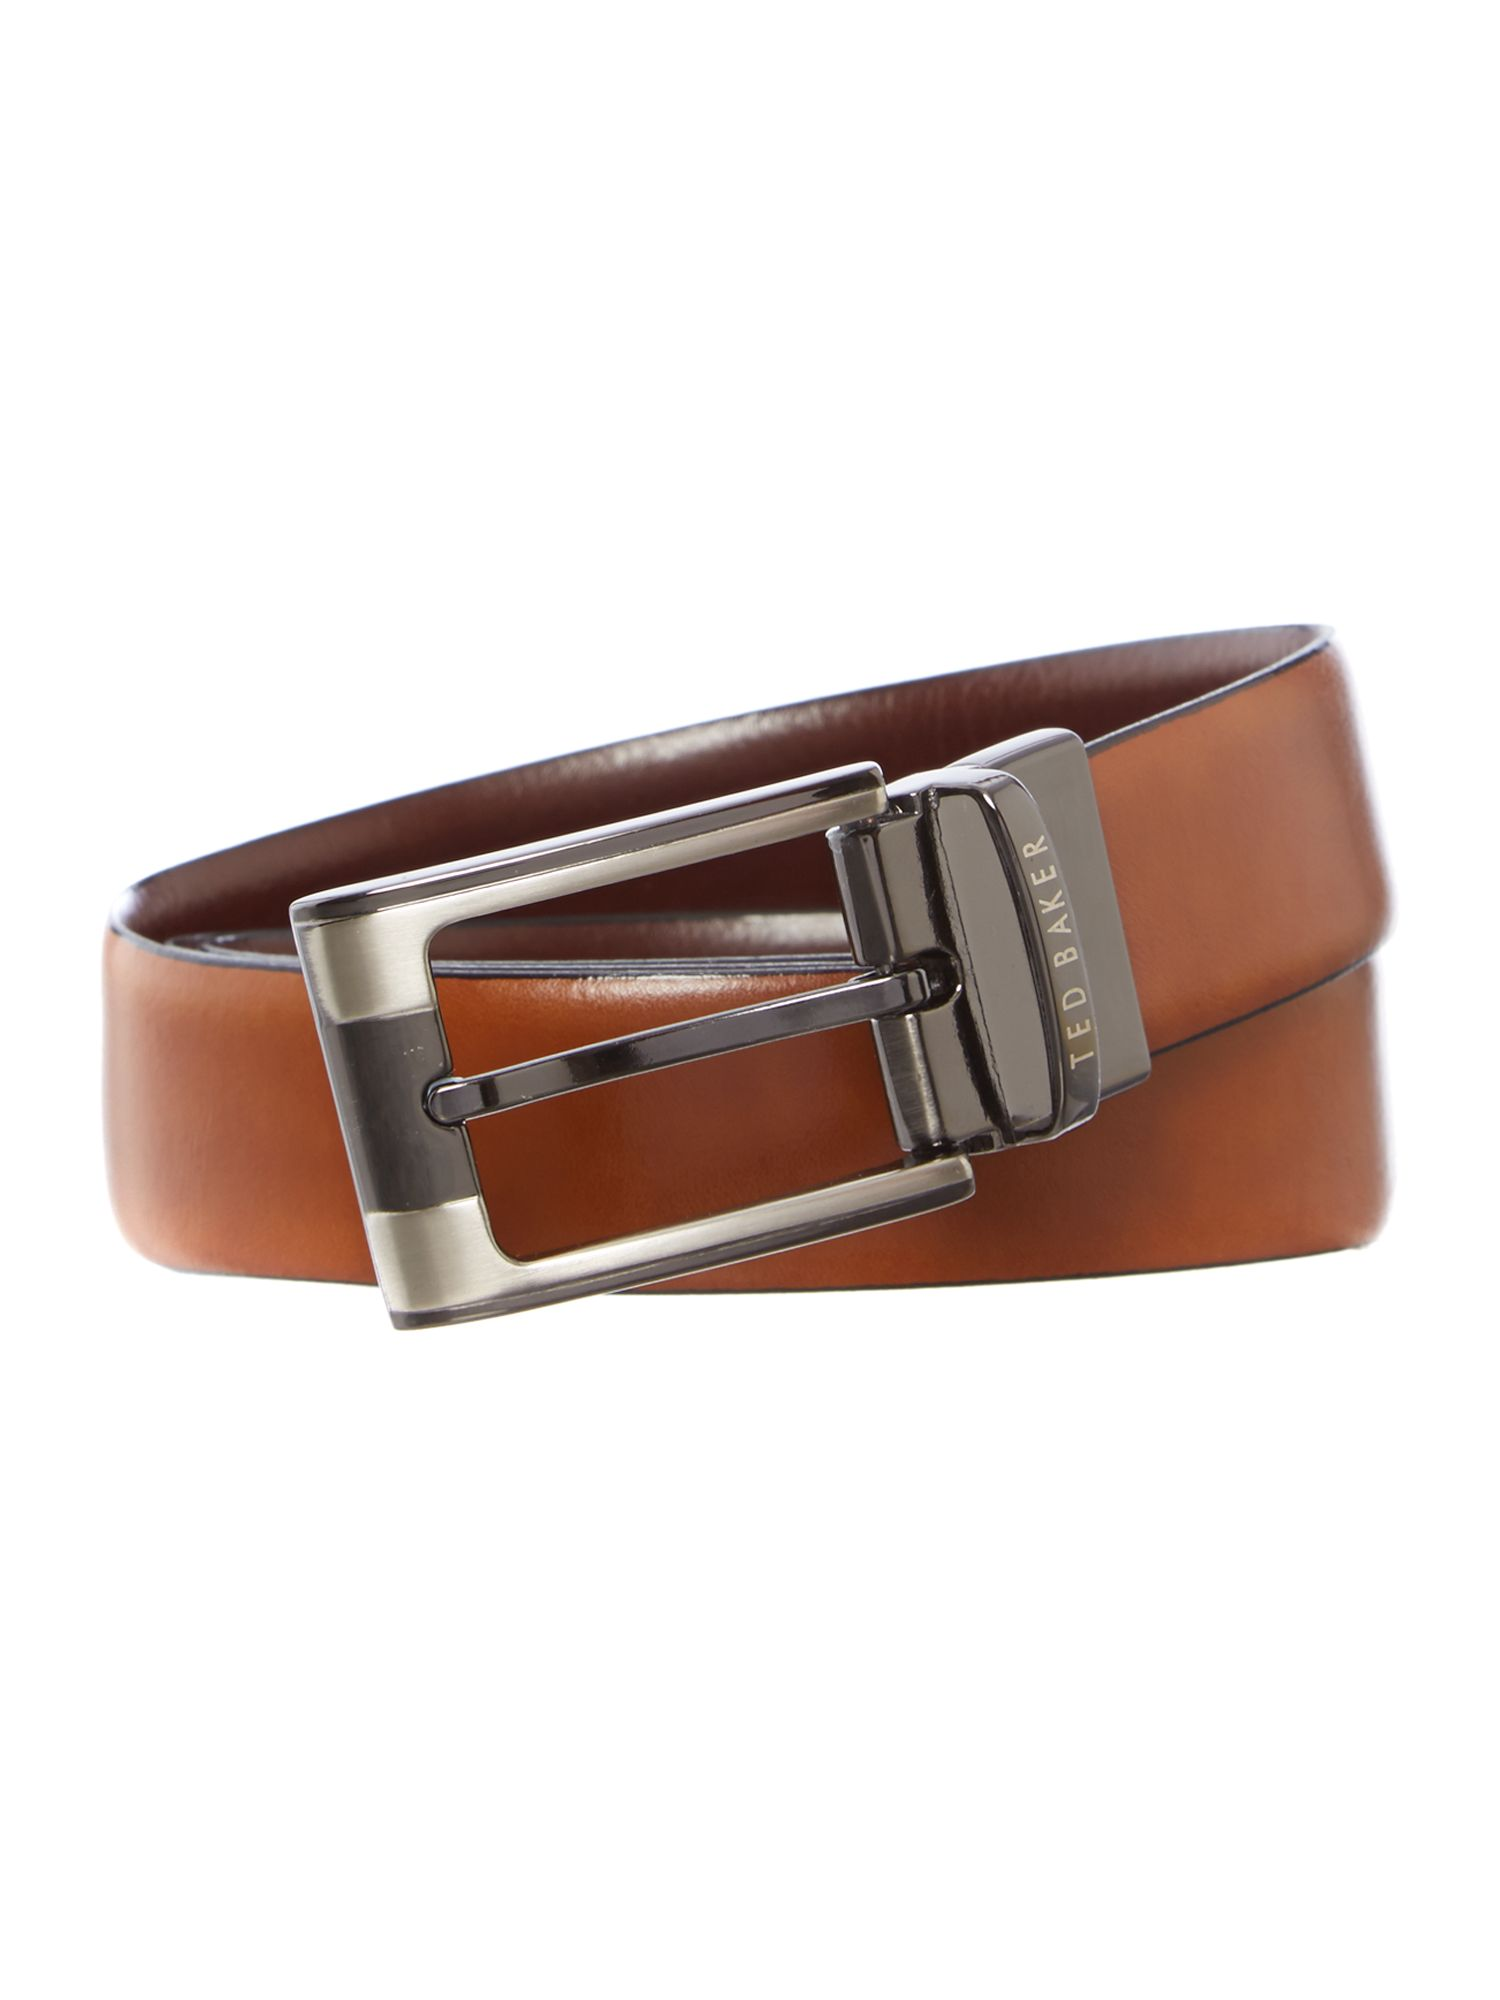 Smart leather reversible belt